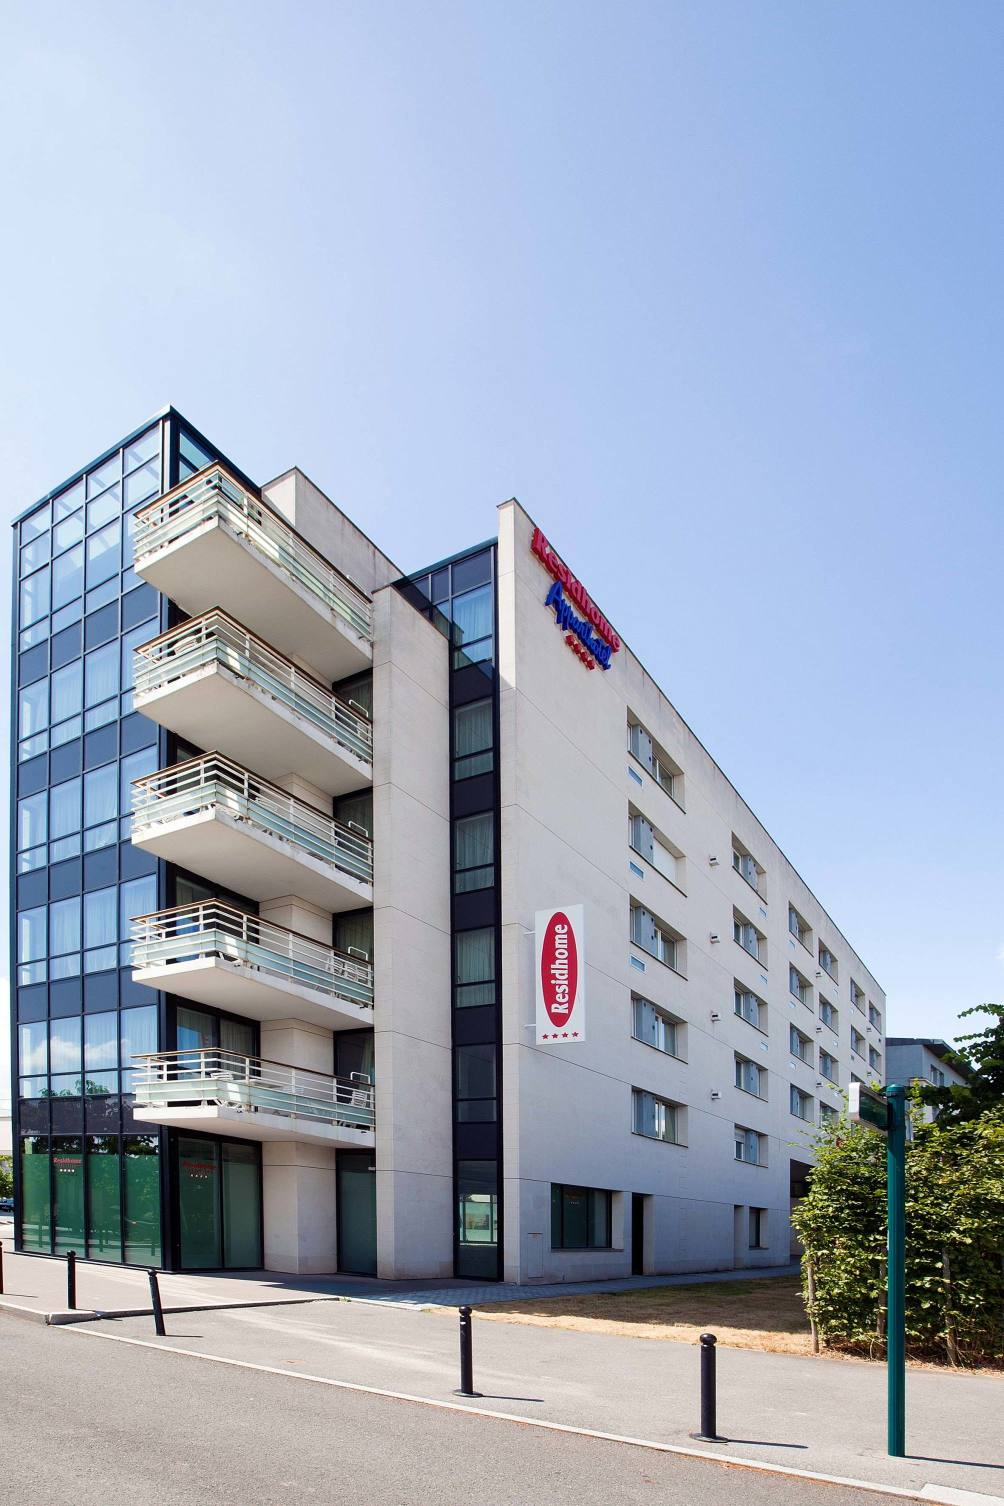 Residhome val d 39 europe hotel paris from 60 for Residhome appart hotel